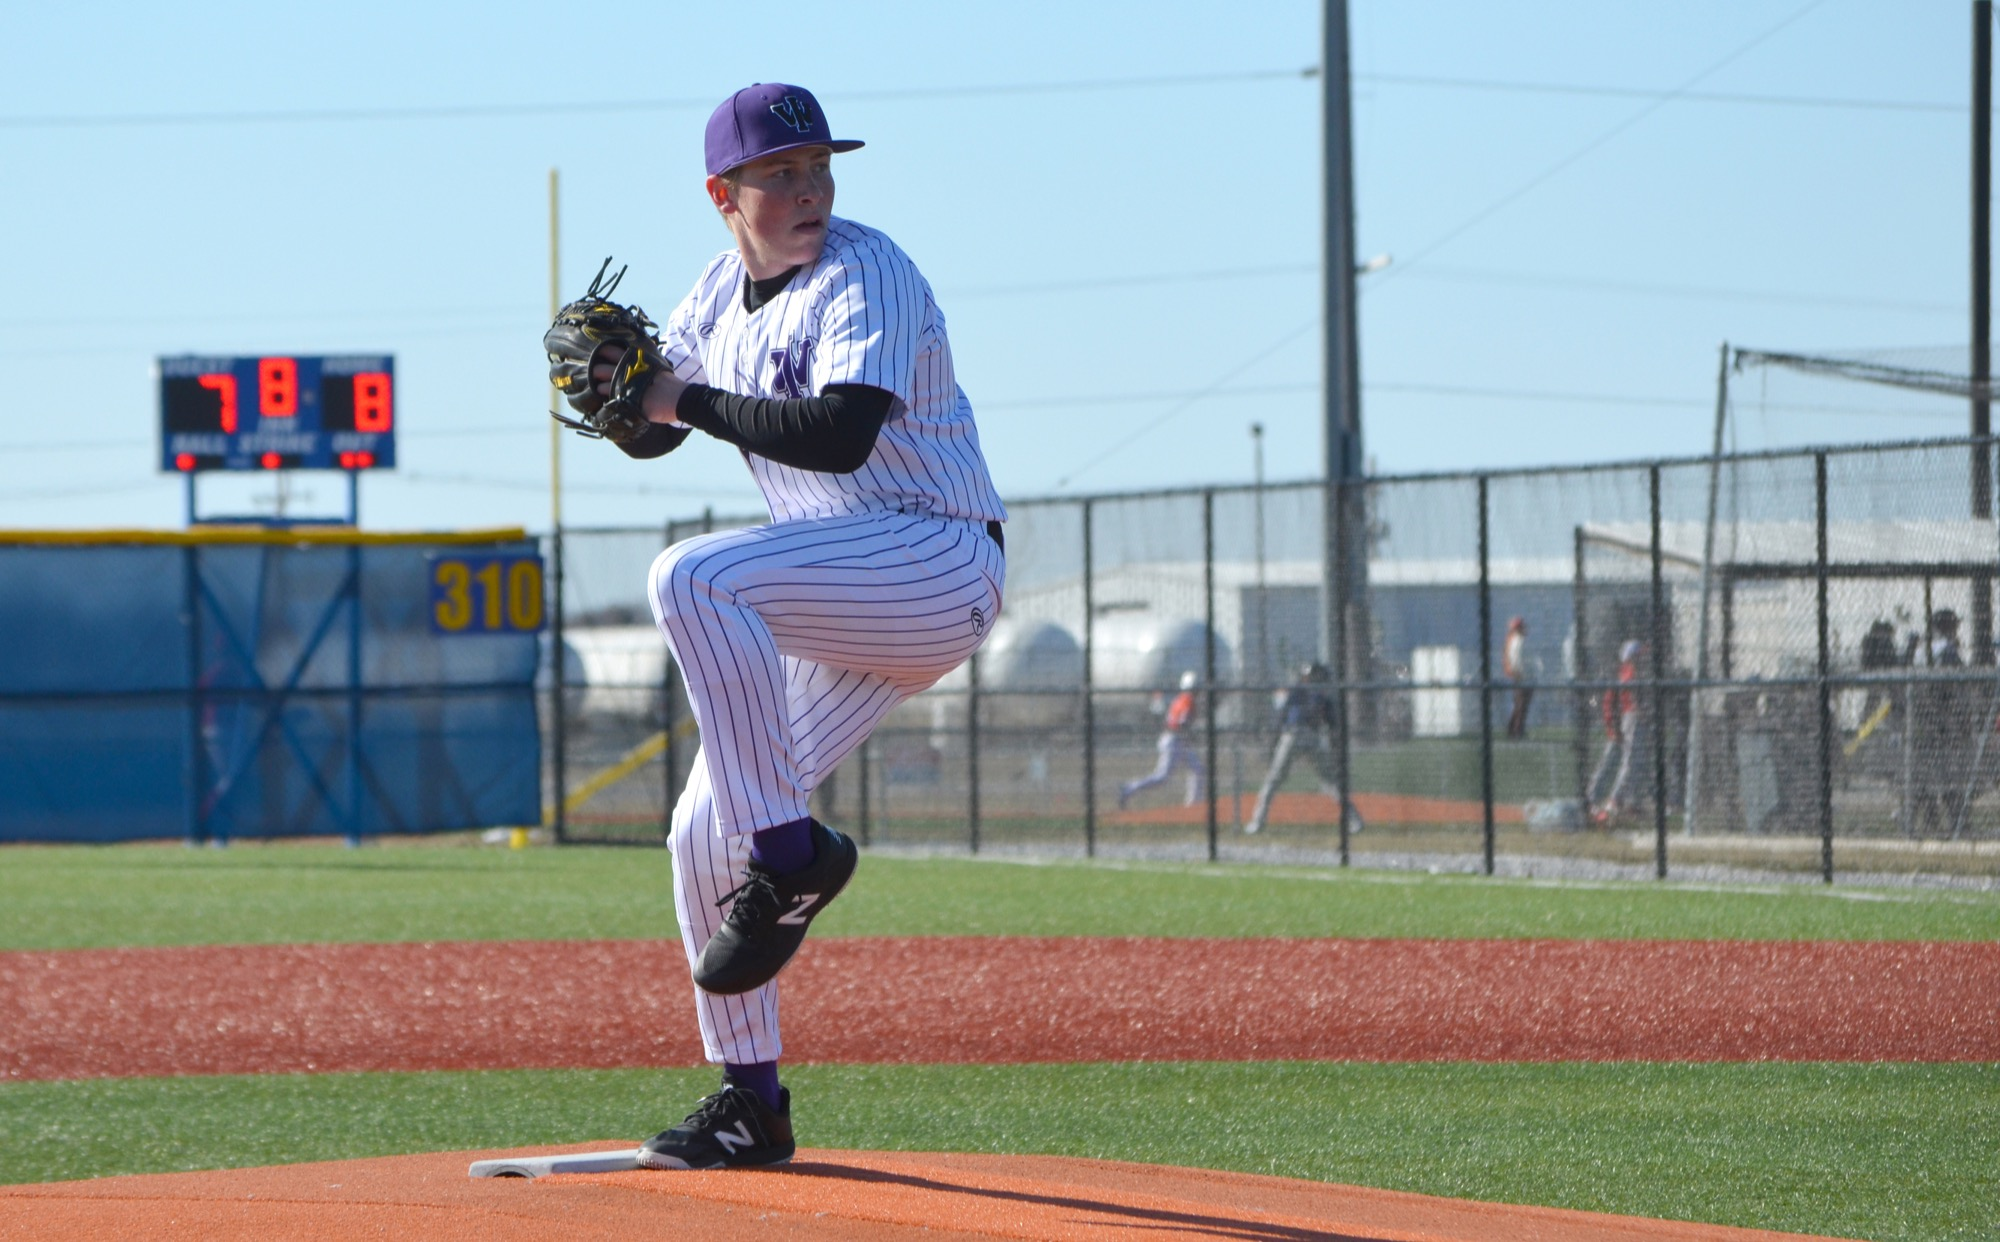 William Hlady (Dauphin, Man.) led Canadian pitchers in appearances with four for Iowa Wesleyan University. Photo: Iowa Wesleyan University